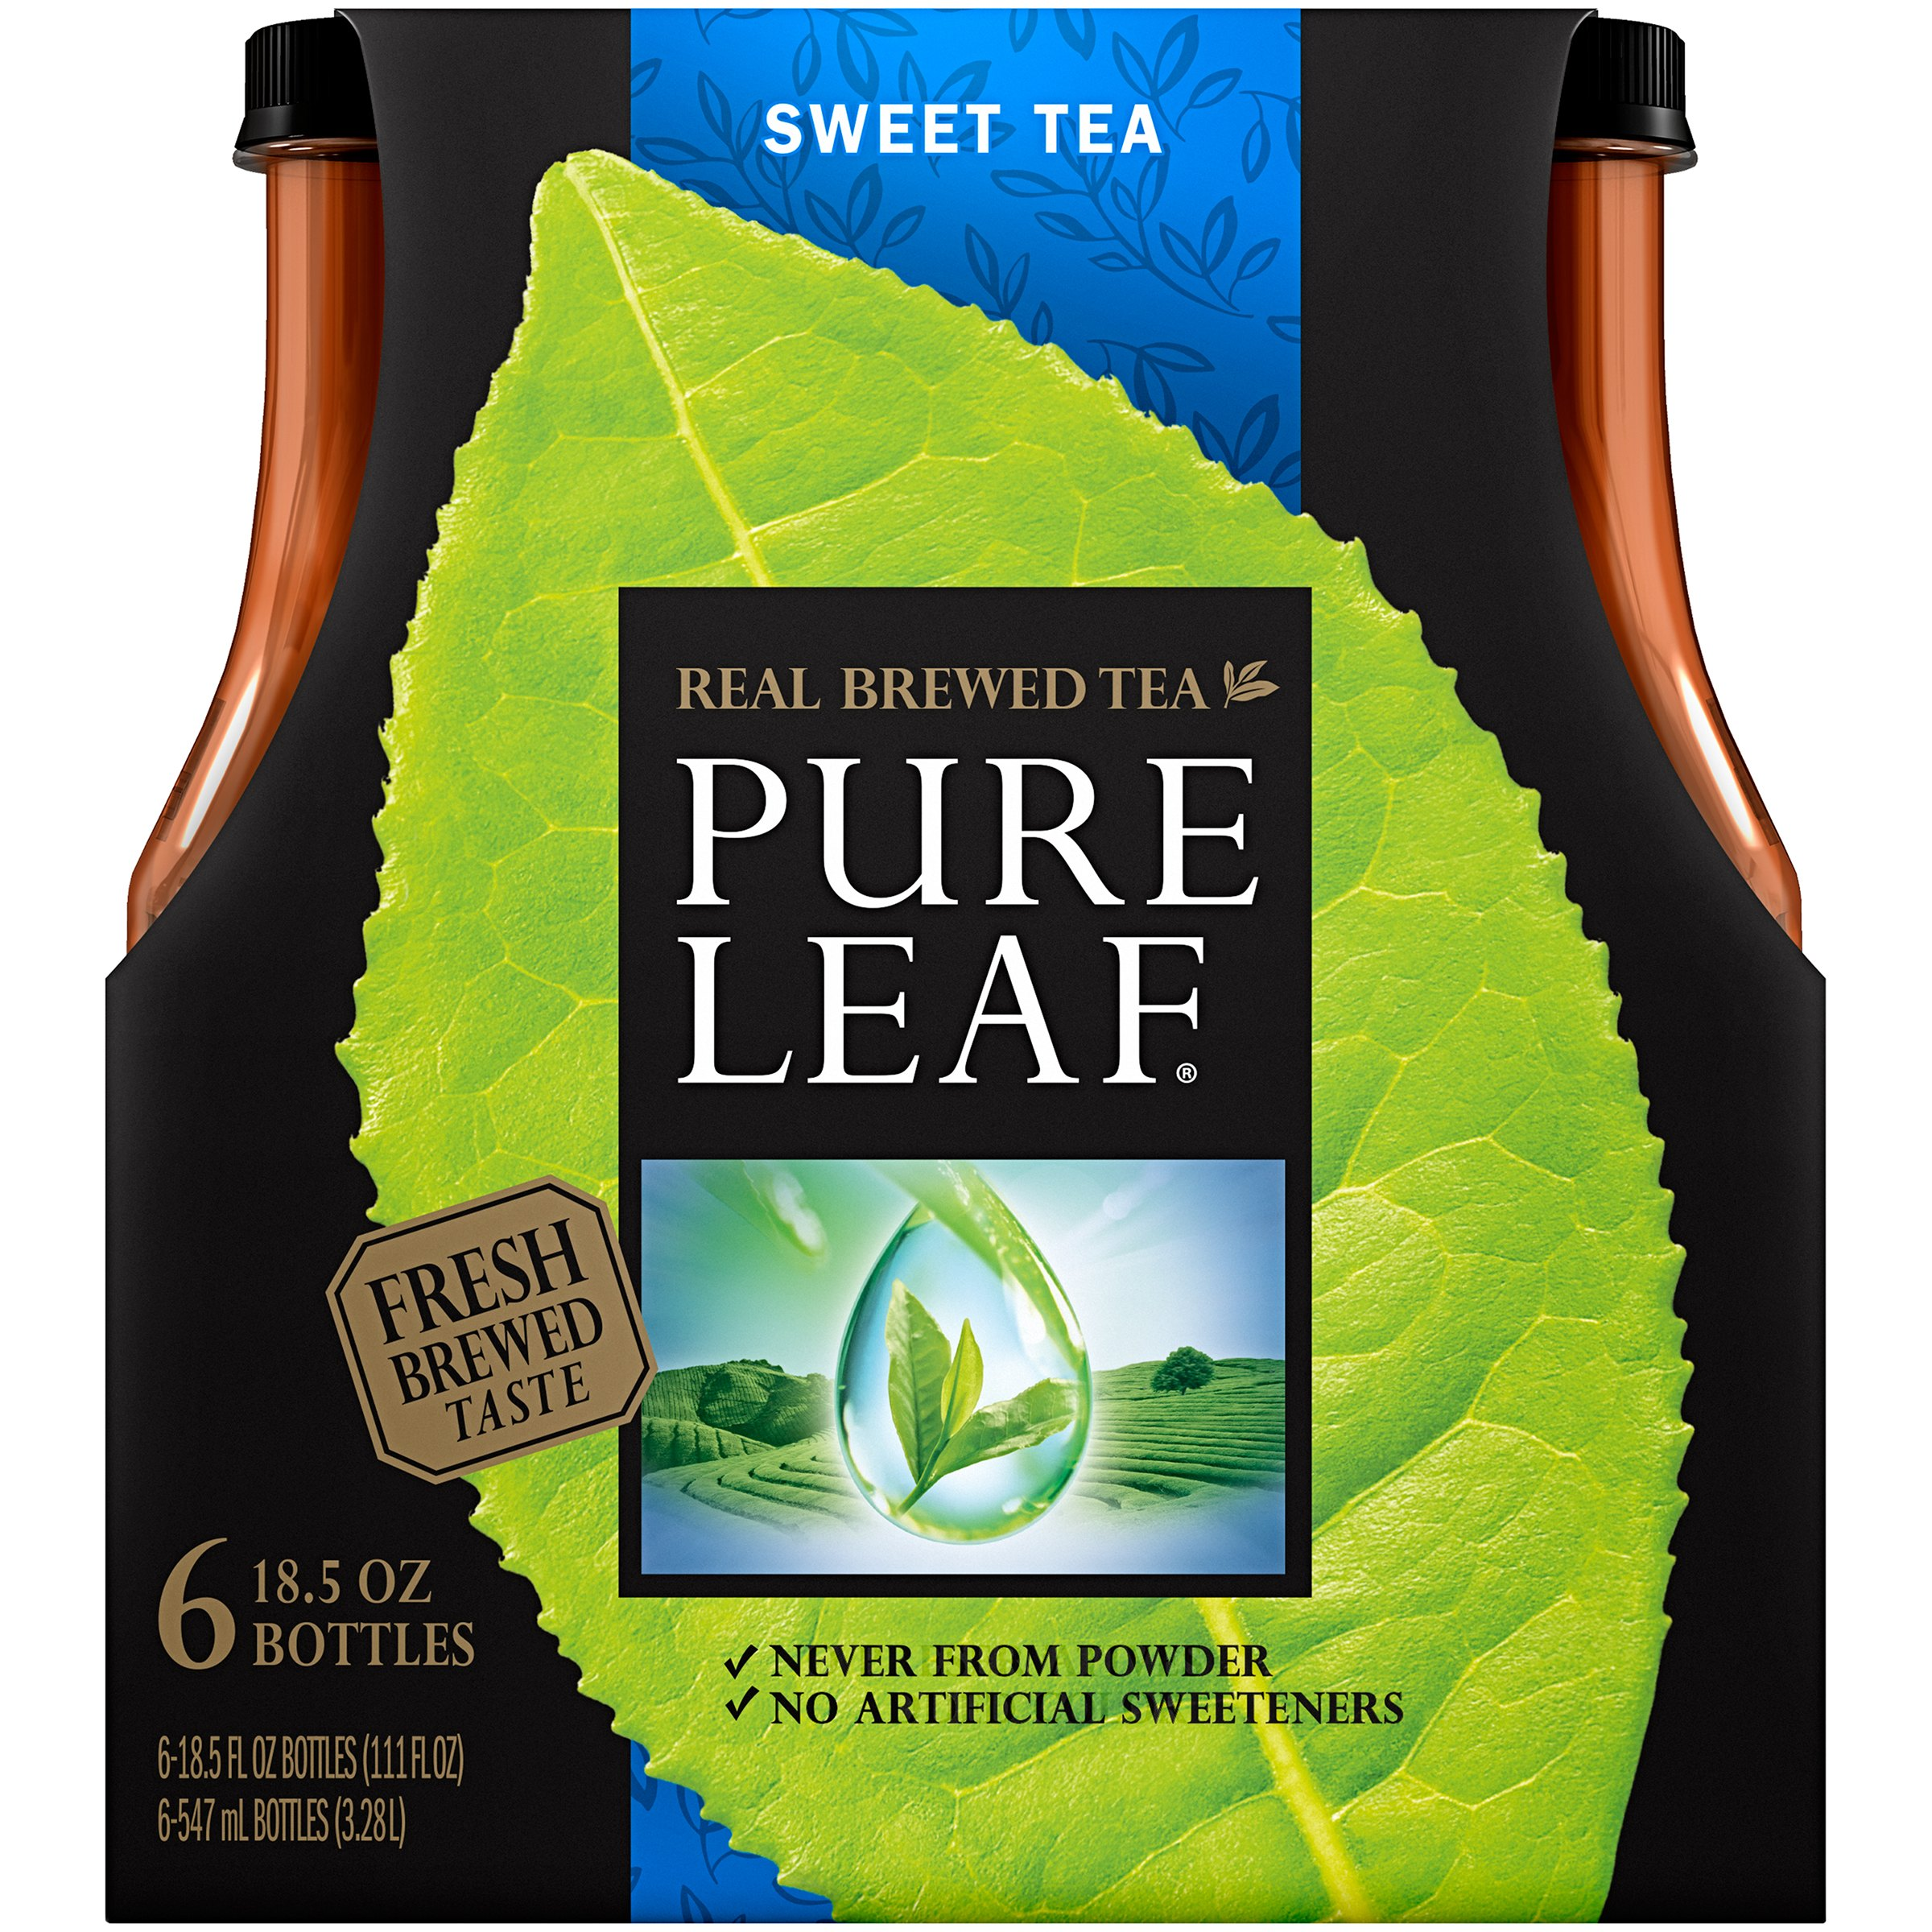 Pure Leaf Real Brewed Tea, Sweet Tea, 6 Count, 18.5 fl oz Bottles